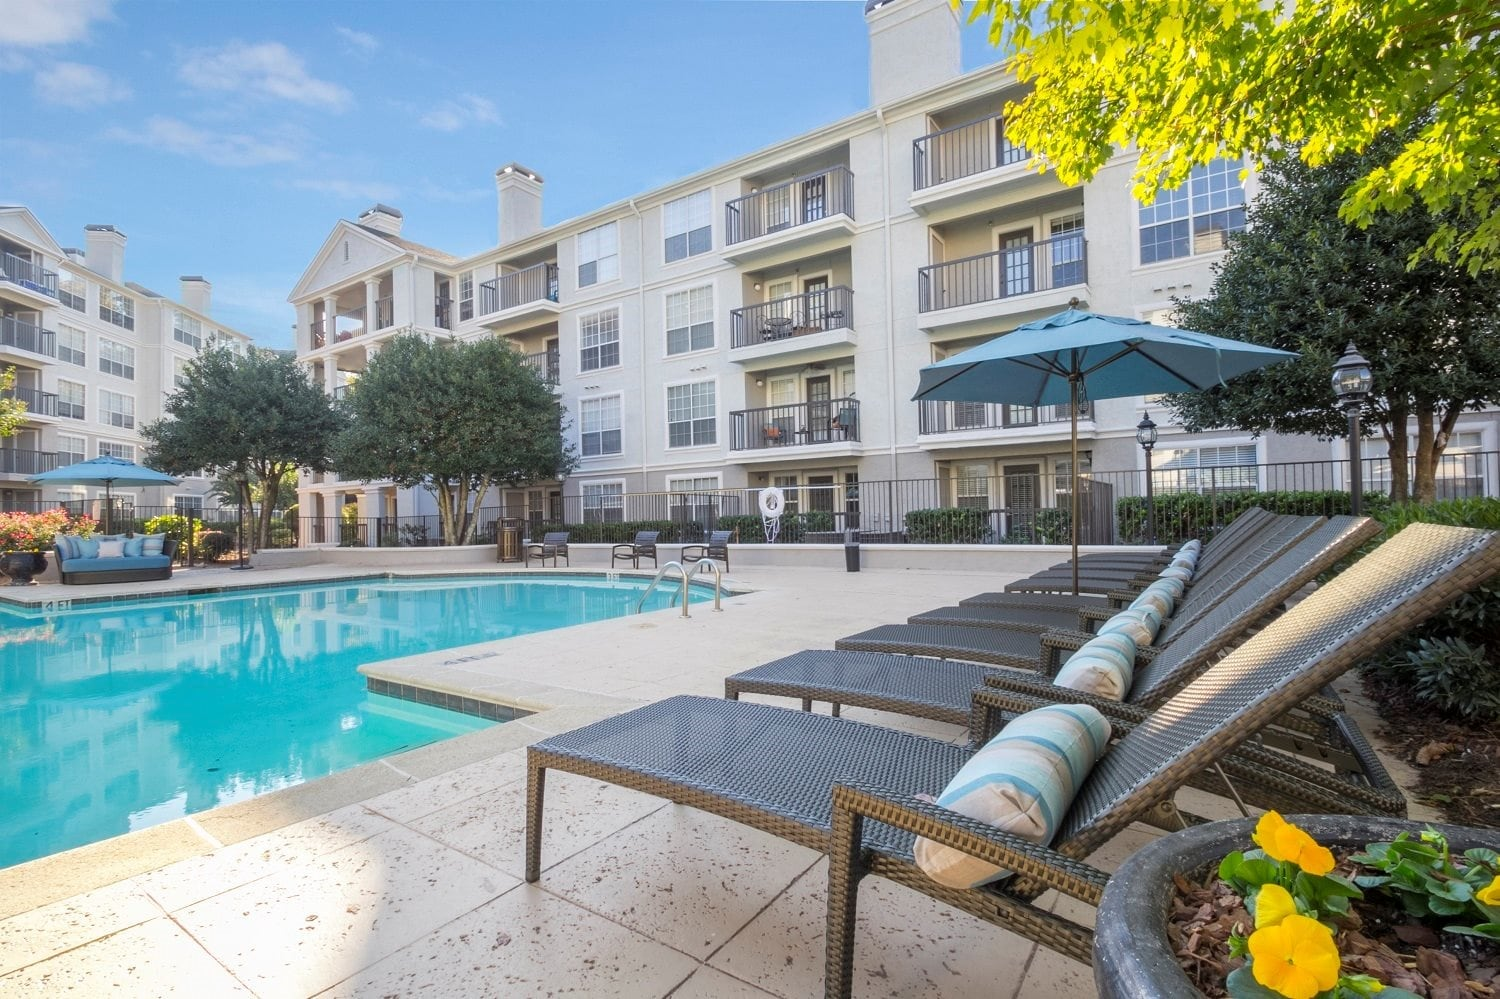 Apartments Near Sandy Springs Ga - Houses For Rent Info